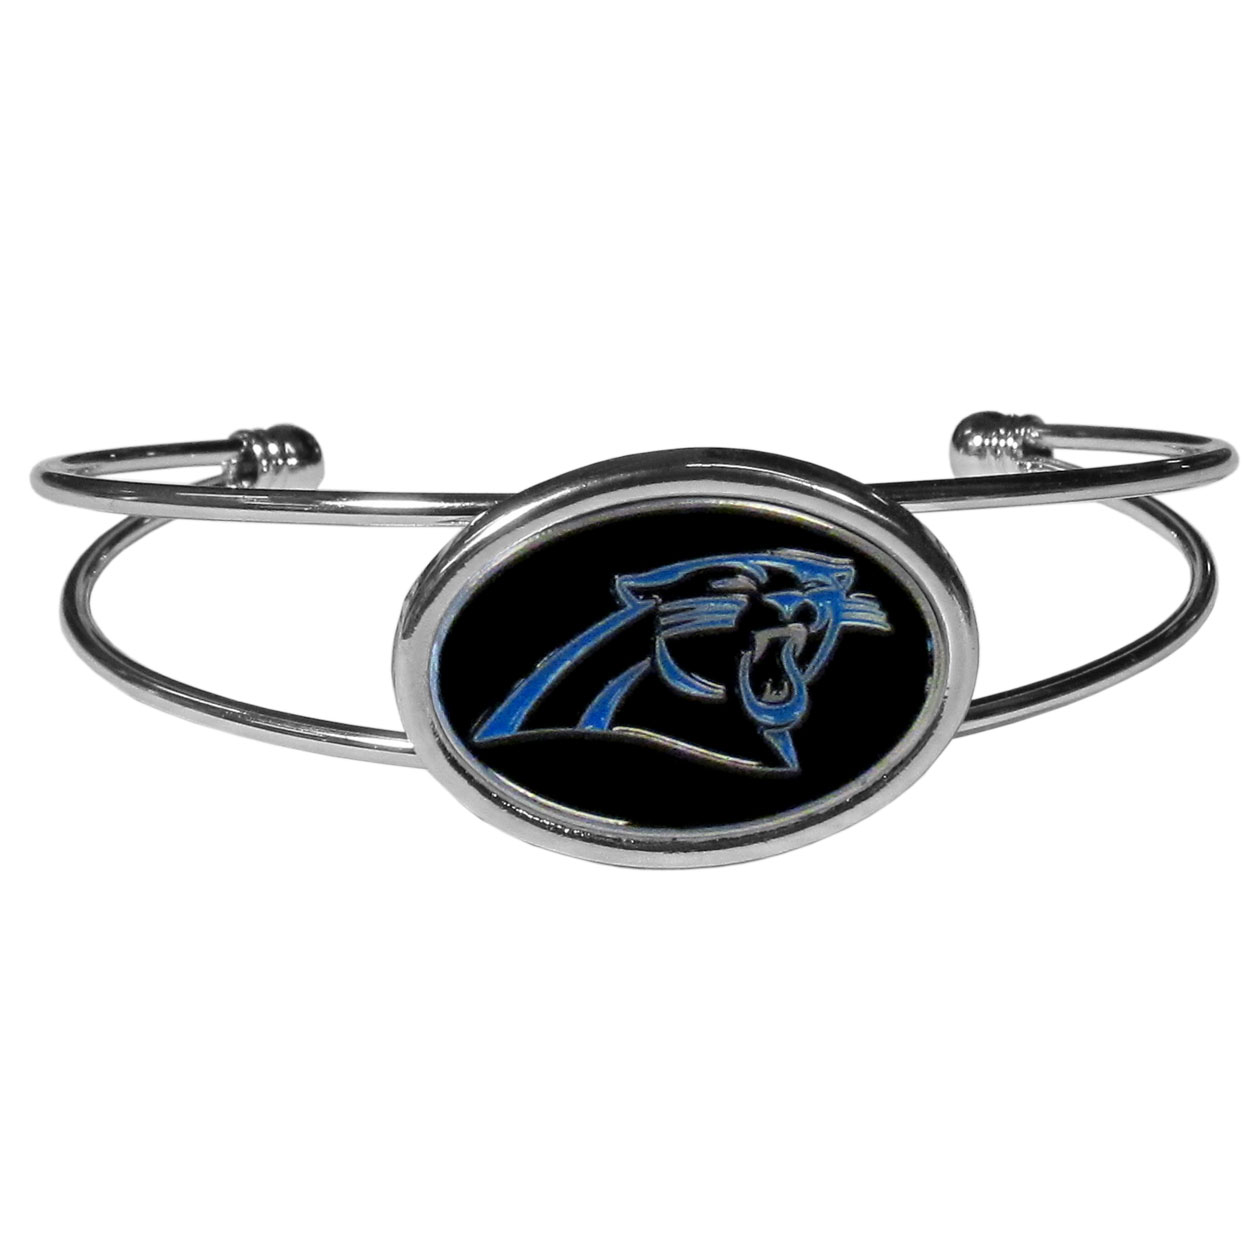 Carolina Panthers Cuff Bracelet - These comfortable and fashionable double-bar cuff bracelets feature a 1 inch metal Carolina Panthers inset logo with enameled detail.